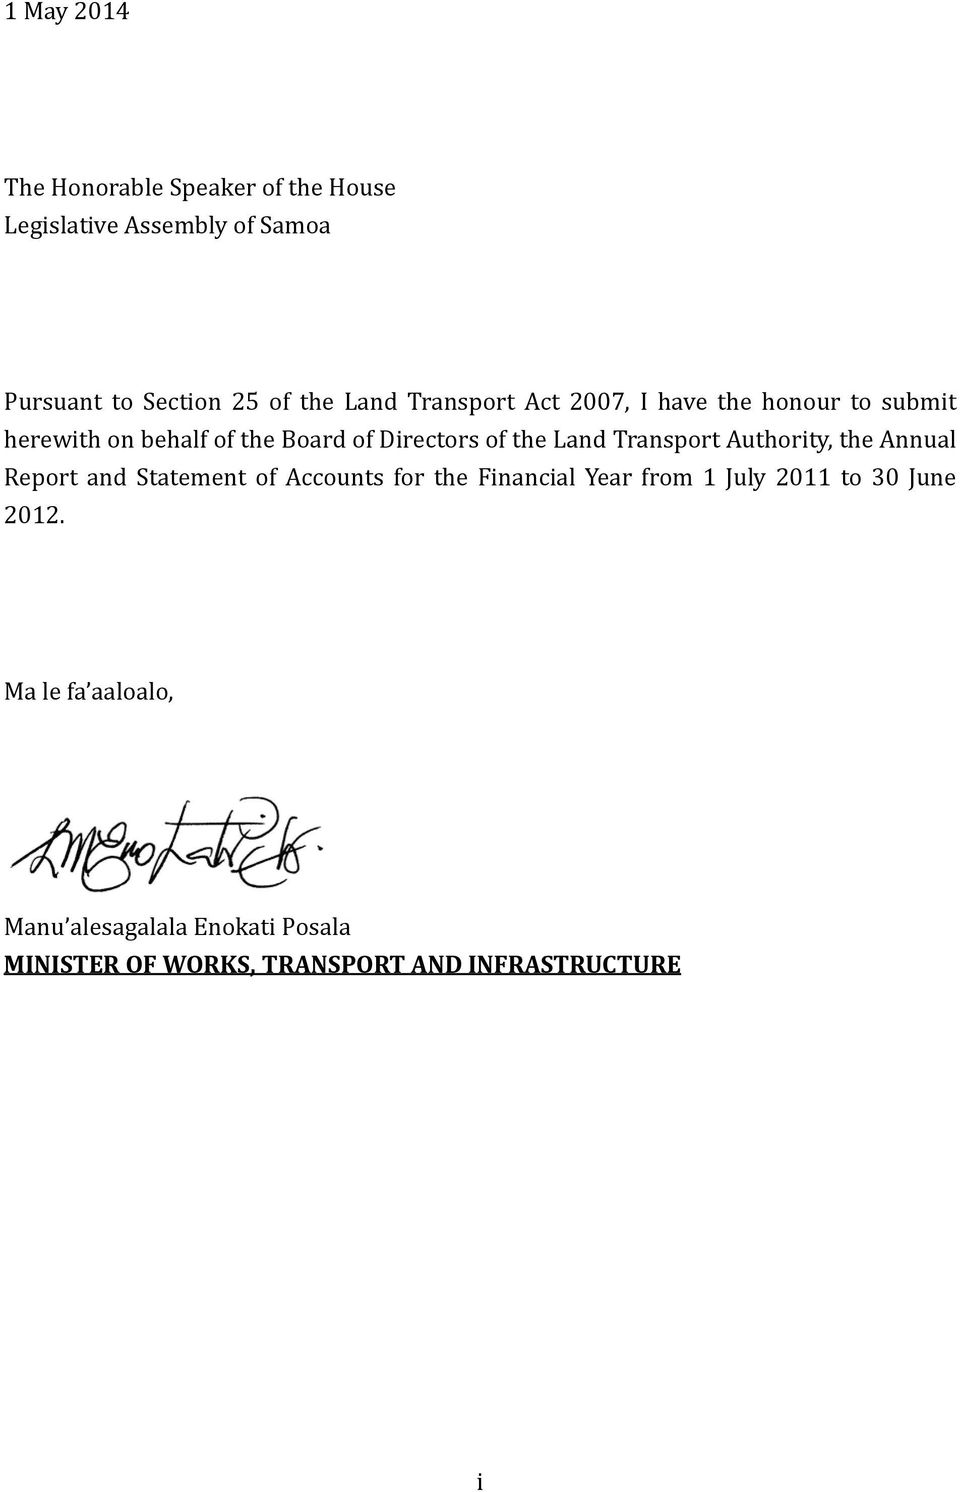 Transport Authority, the Annual Report and Statement of Accounts for the Financial Year from 1 July 2011 to